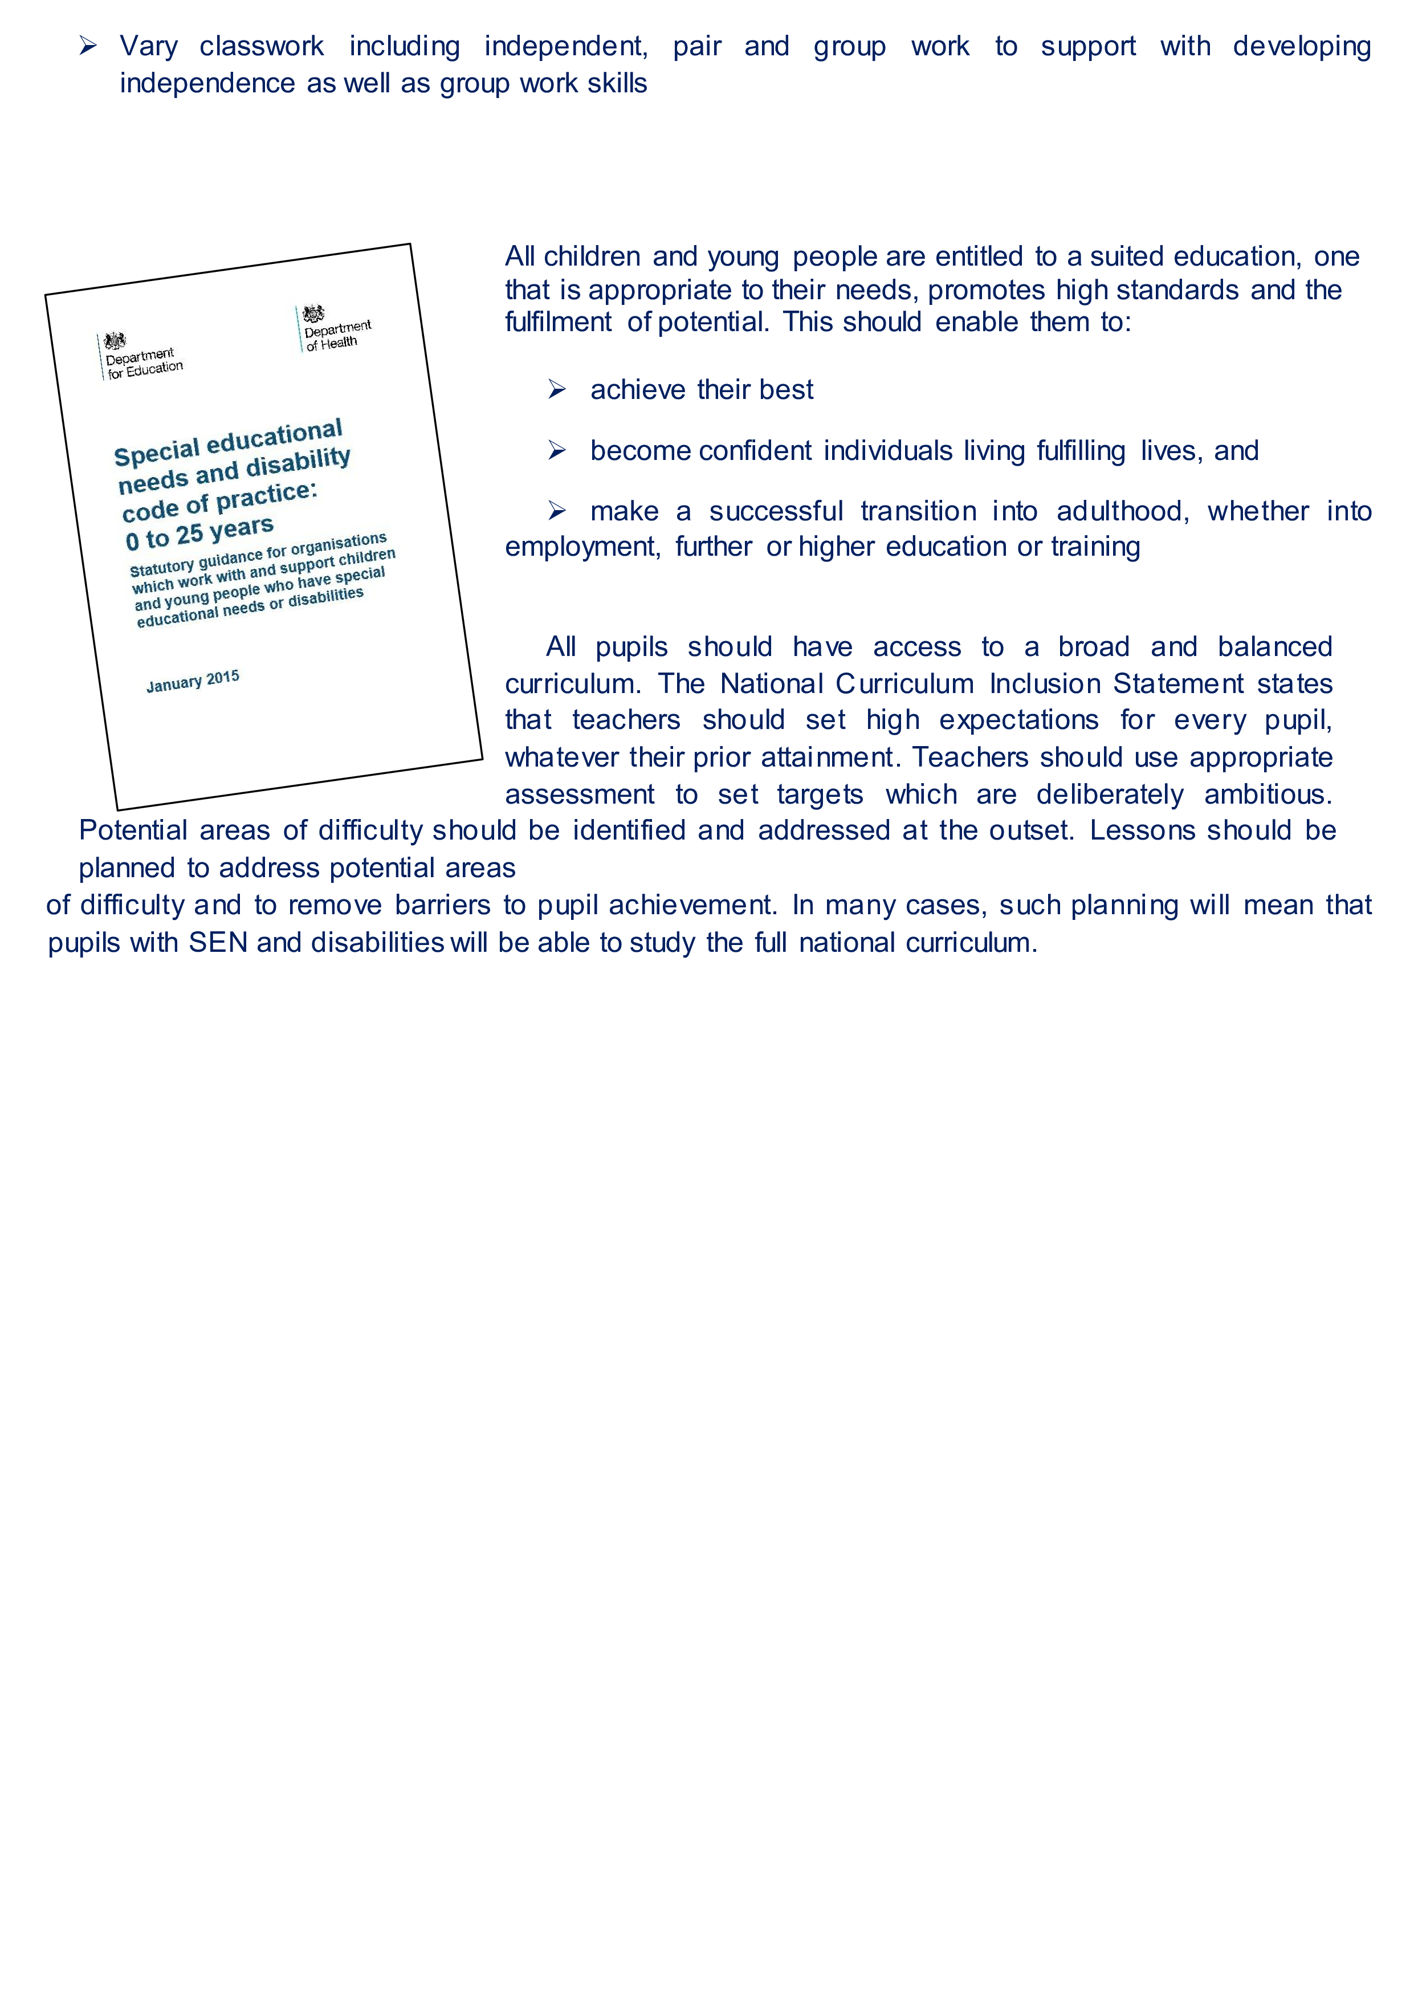 Guide to supporting pupils BPS 0001